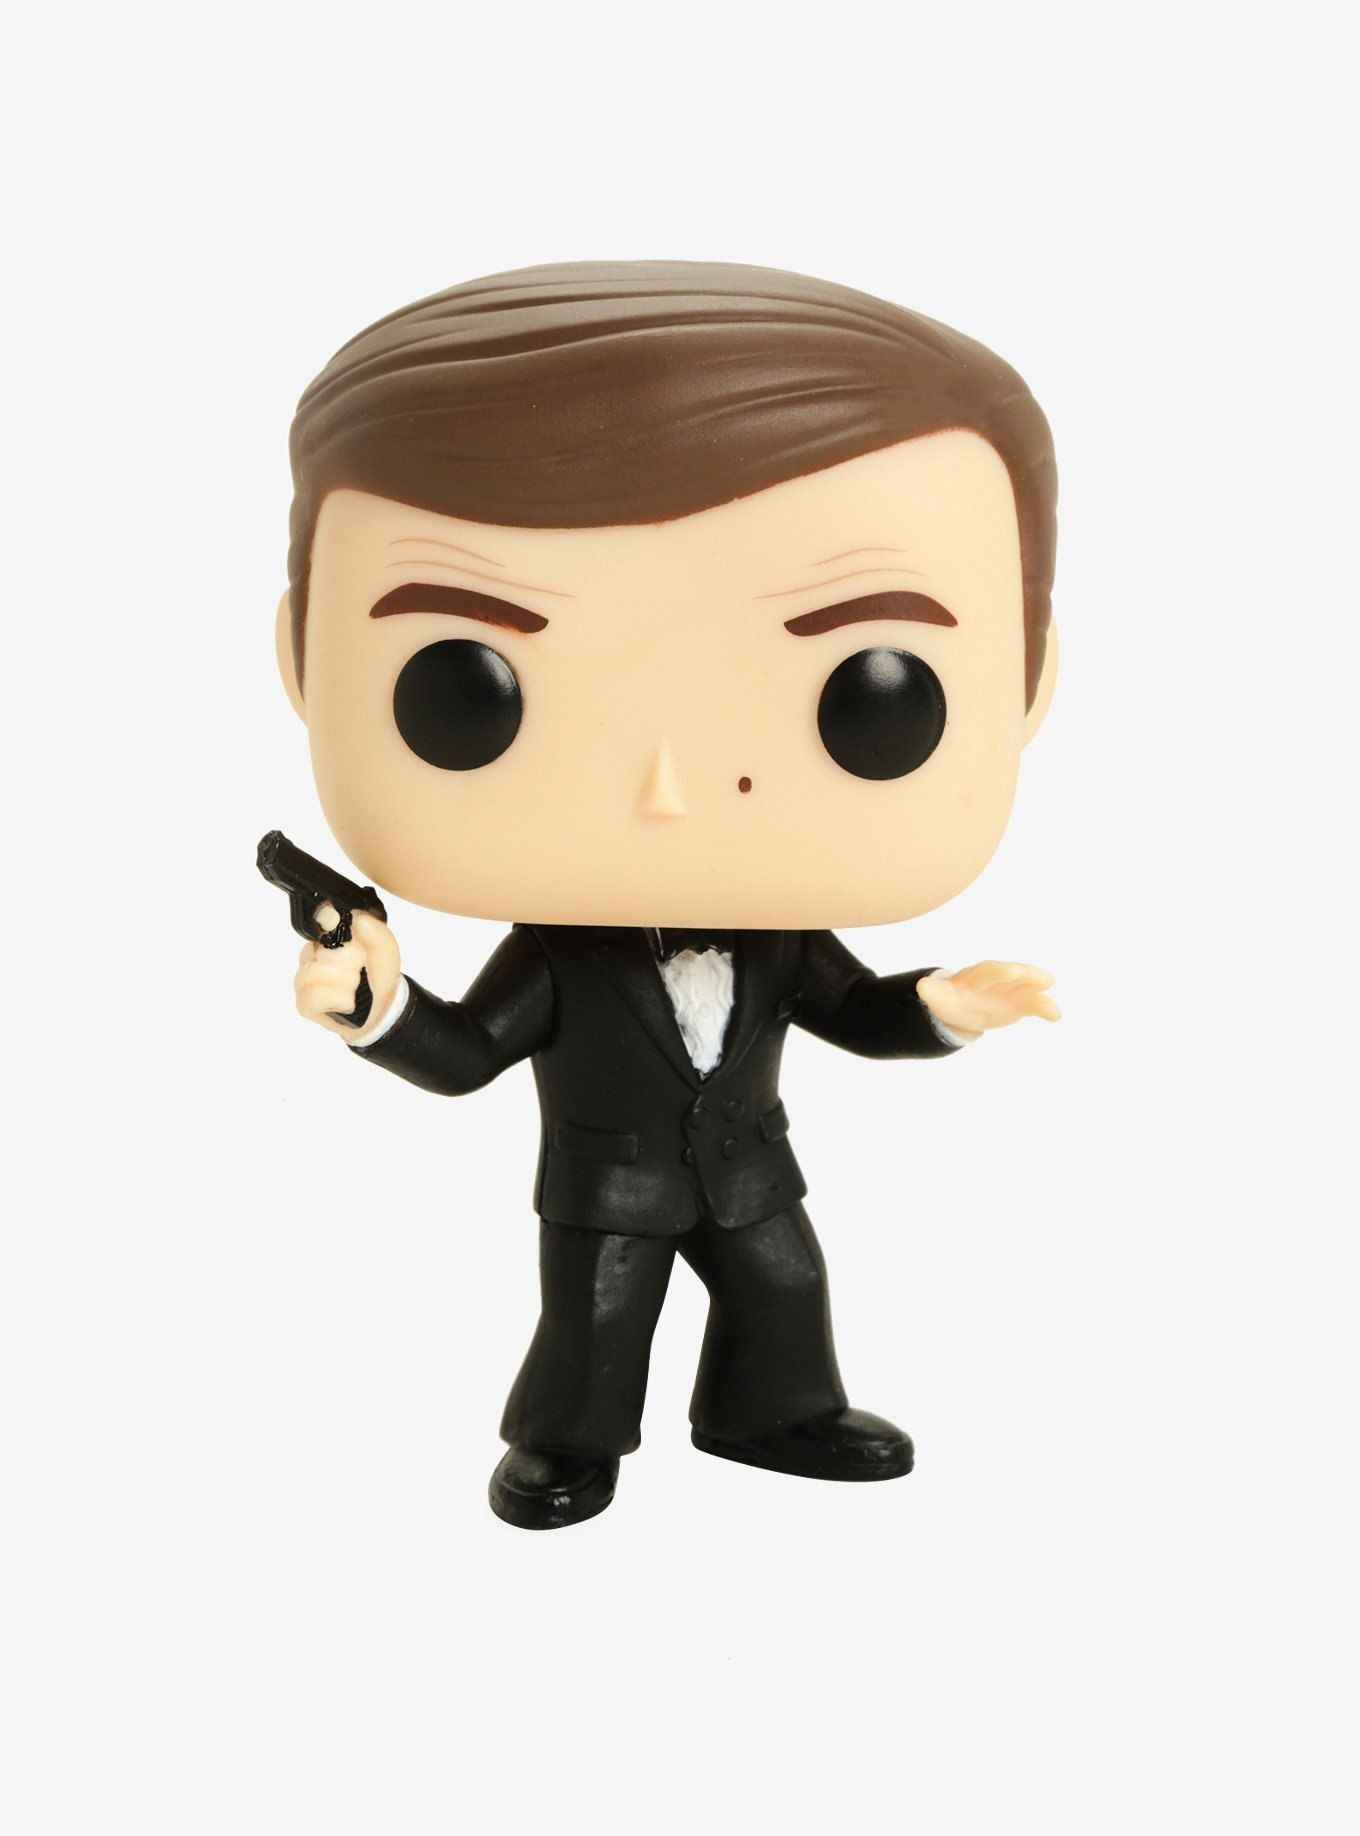 Roger Moore #522 - James Bond - 007 The Spy Loved Me ( O Espião que me Amava ) - Funko Pop! Movies